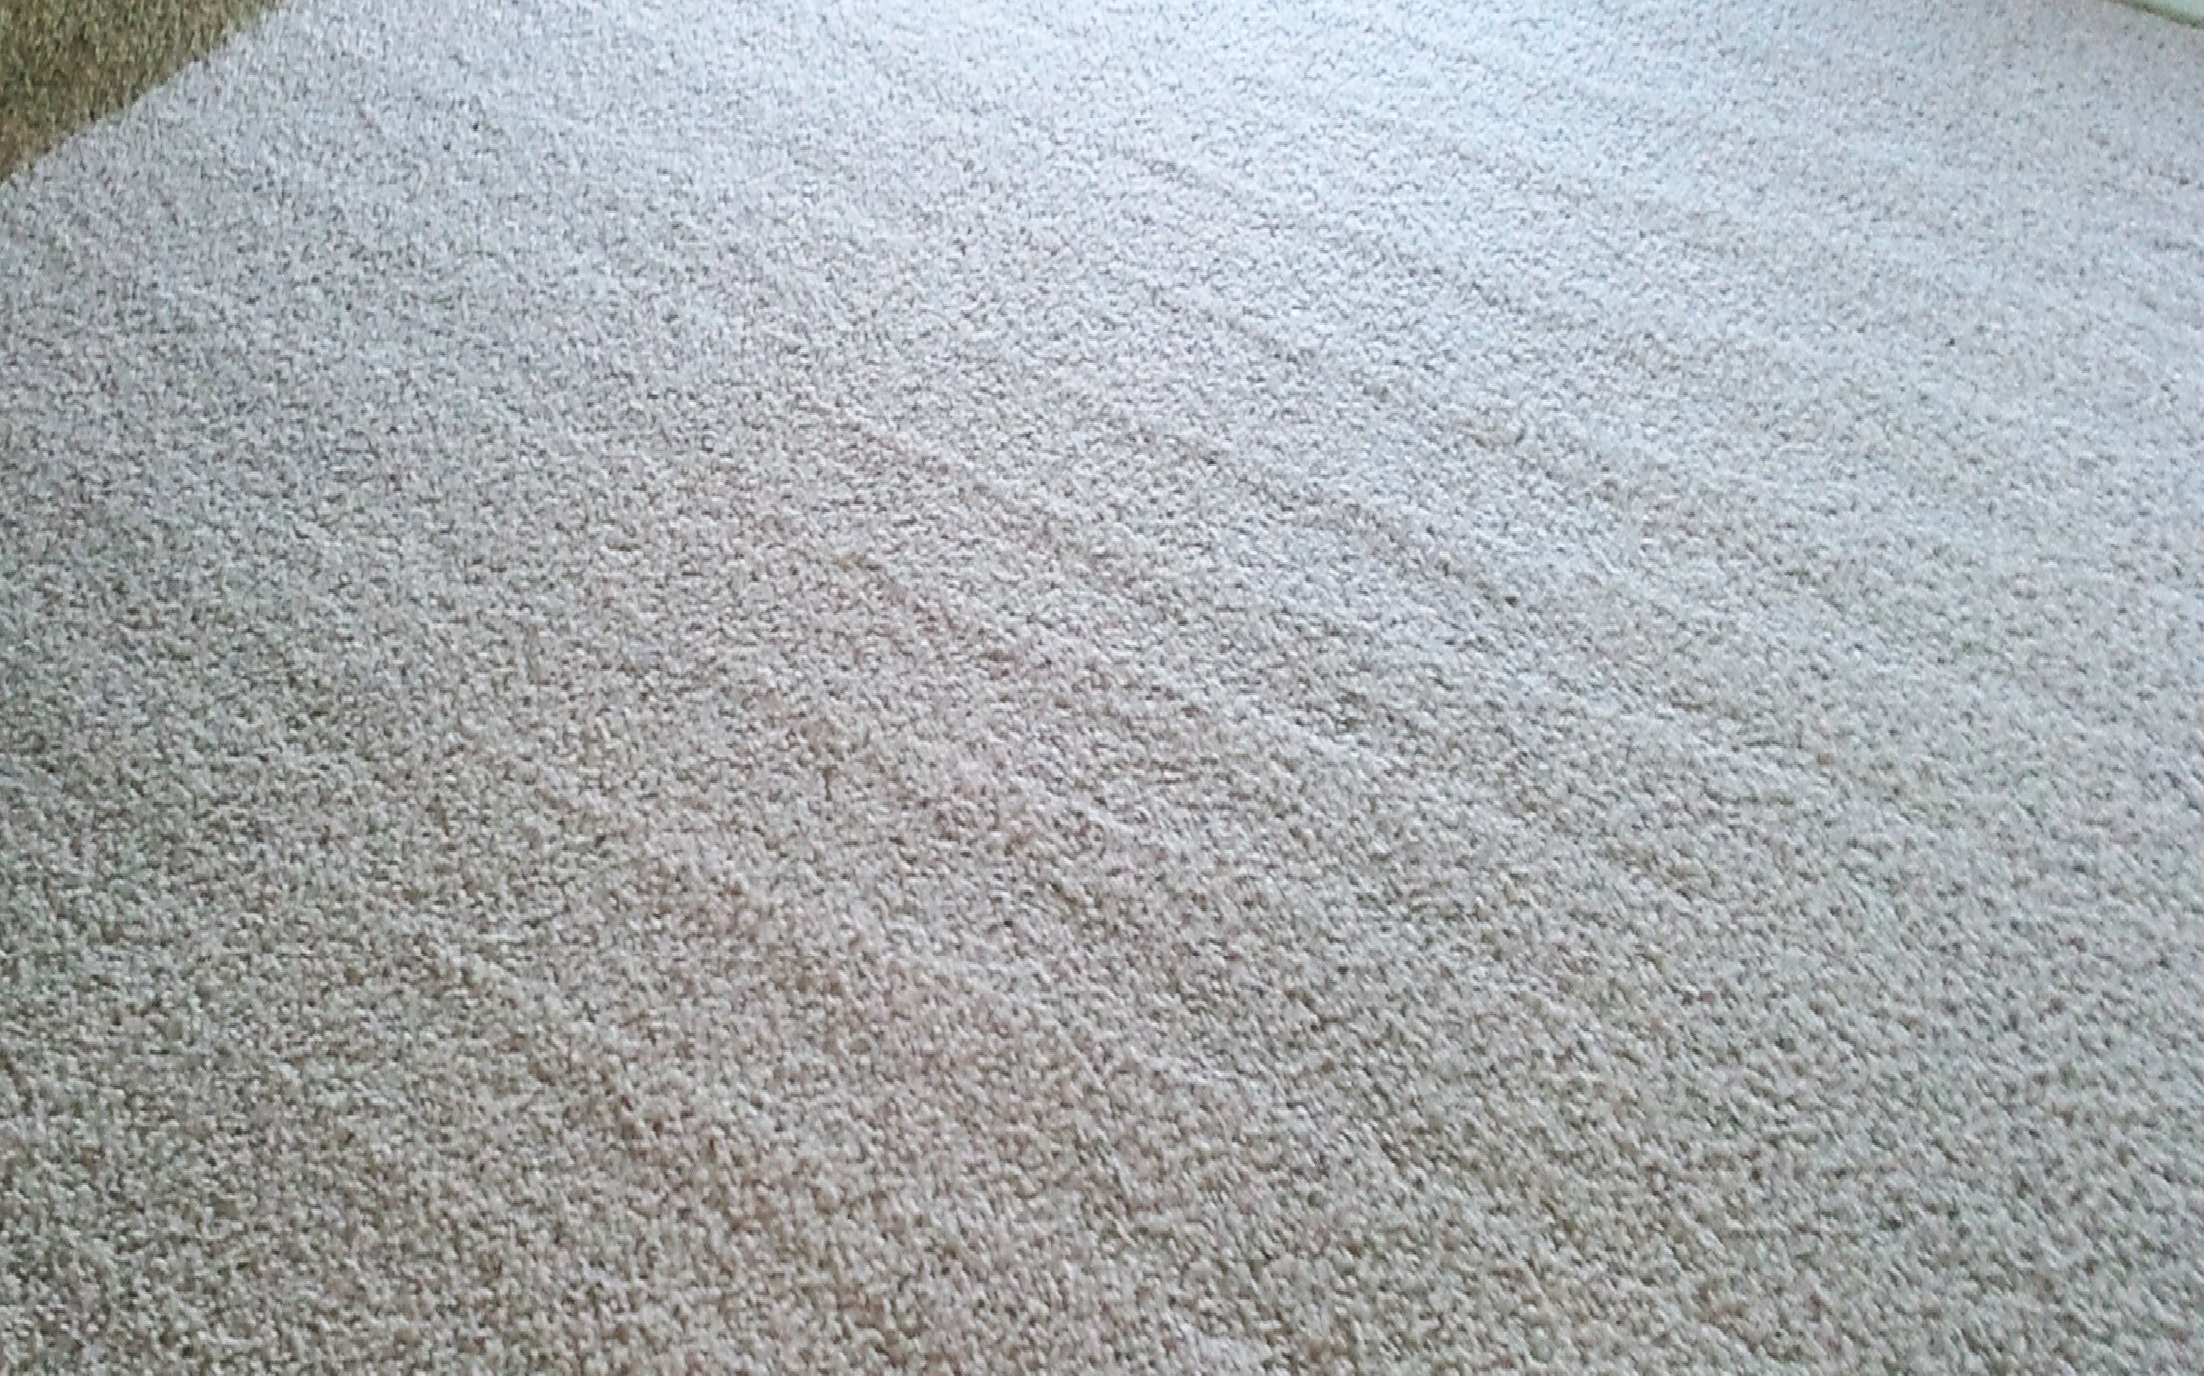 Carpet-Cleaning-Lake-Forest-IL-10.jpg